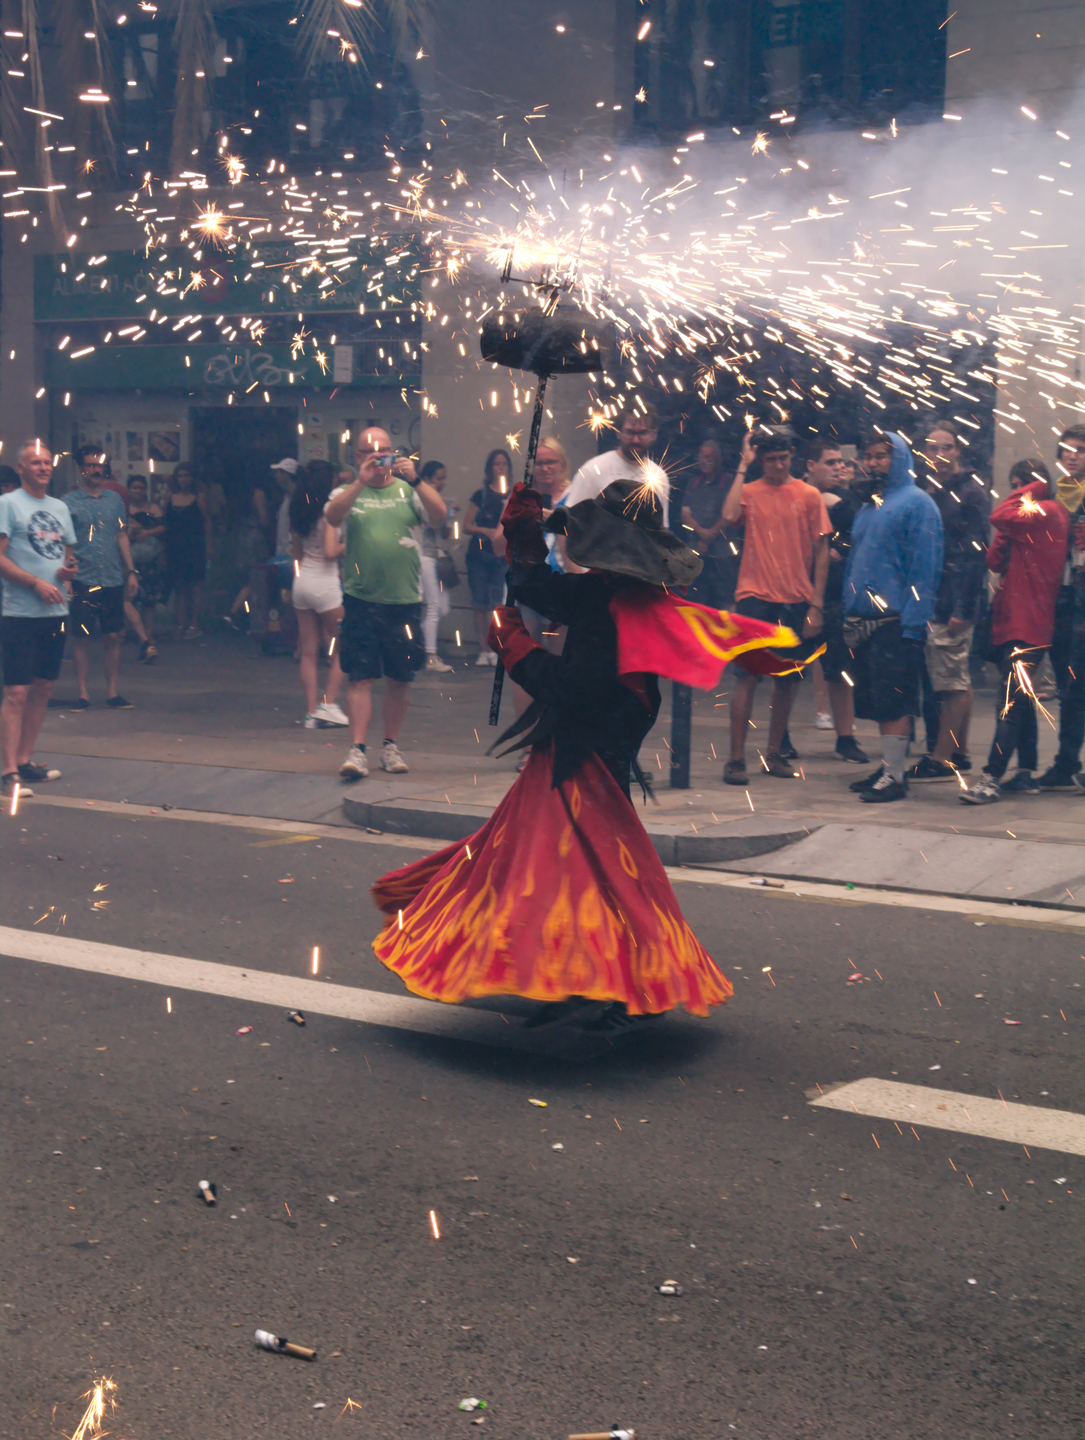 Image of a woman dancing with fireworks during the parade